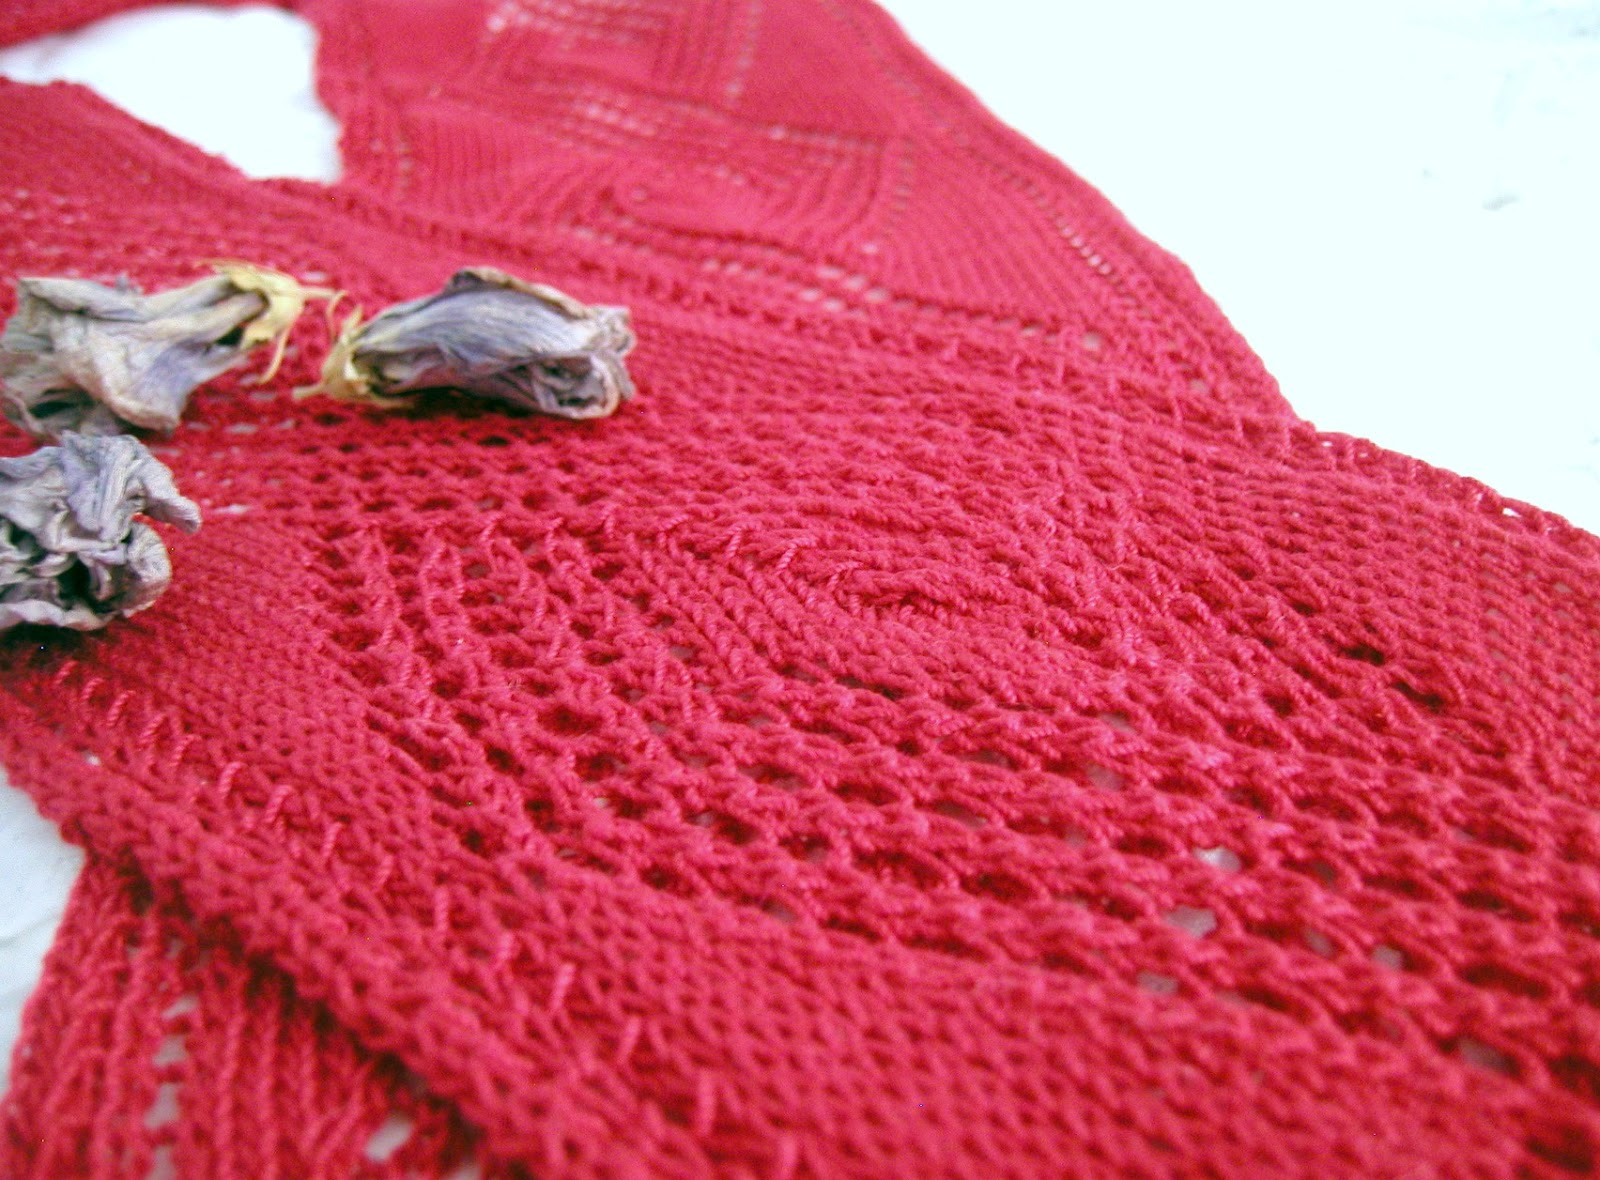 How to knit crochet openwork patterns 45